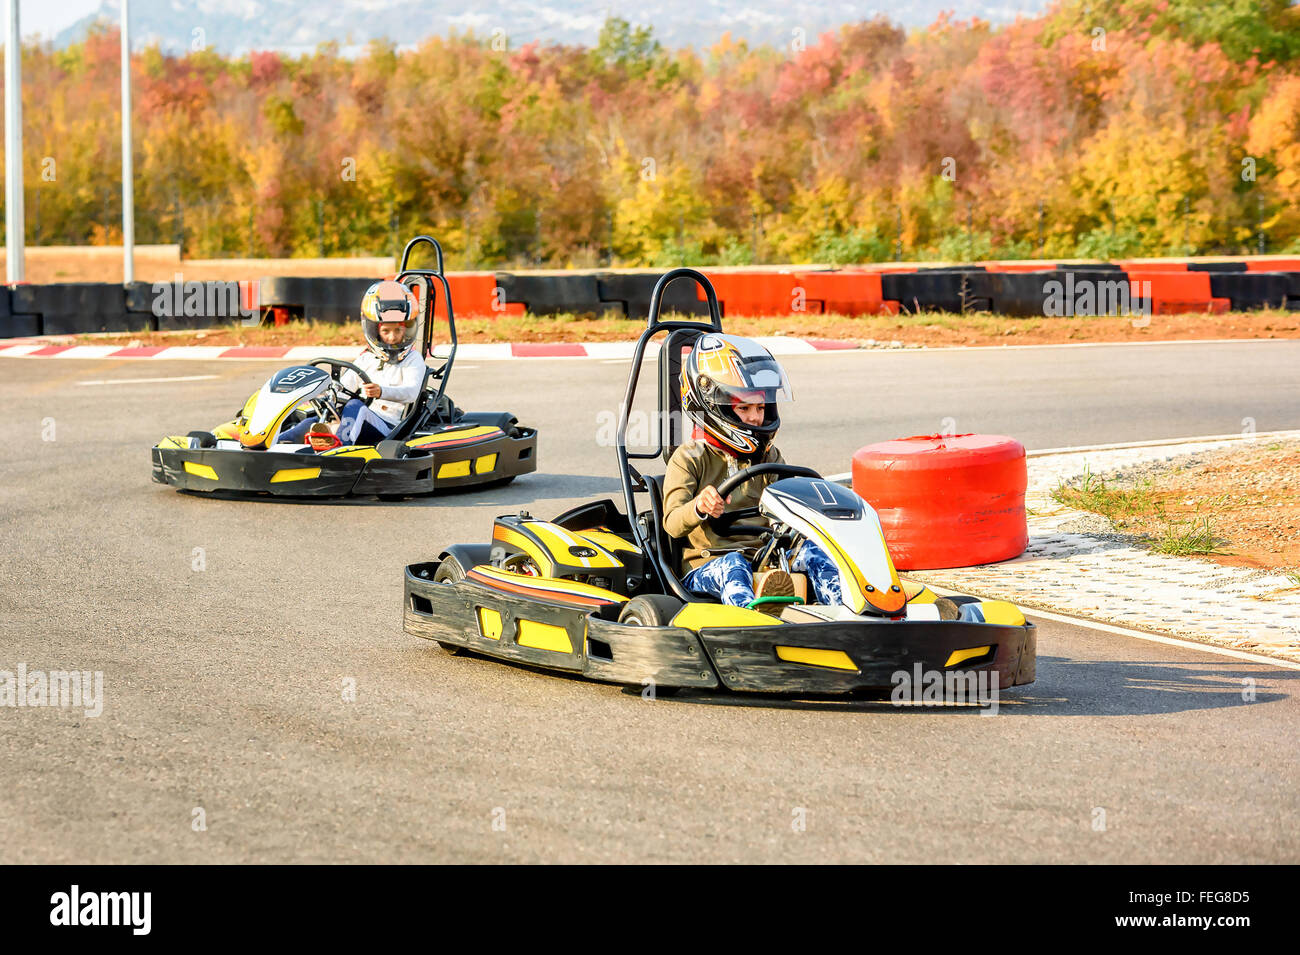 Little girls are driving Go- Kart car in a playground racing track Stock Photo